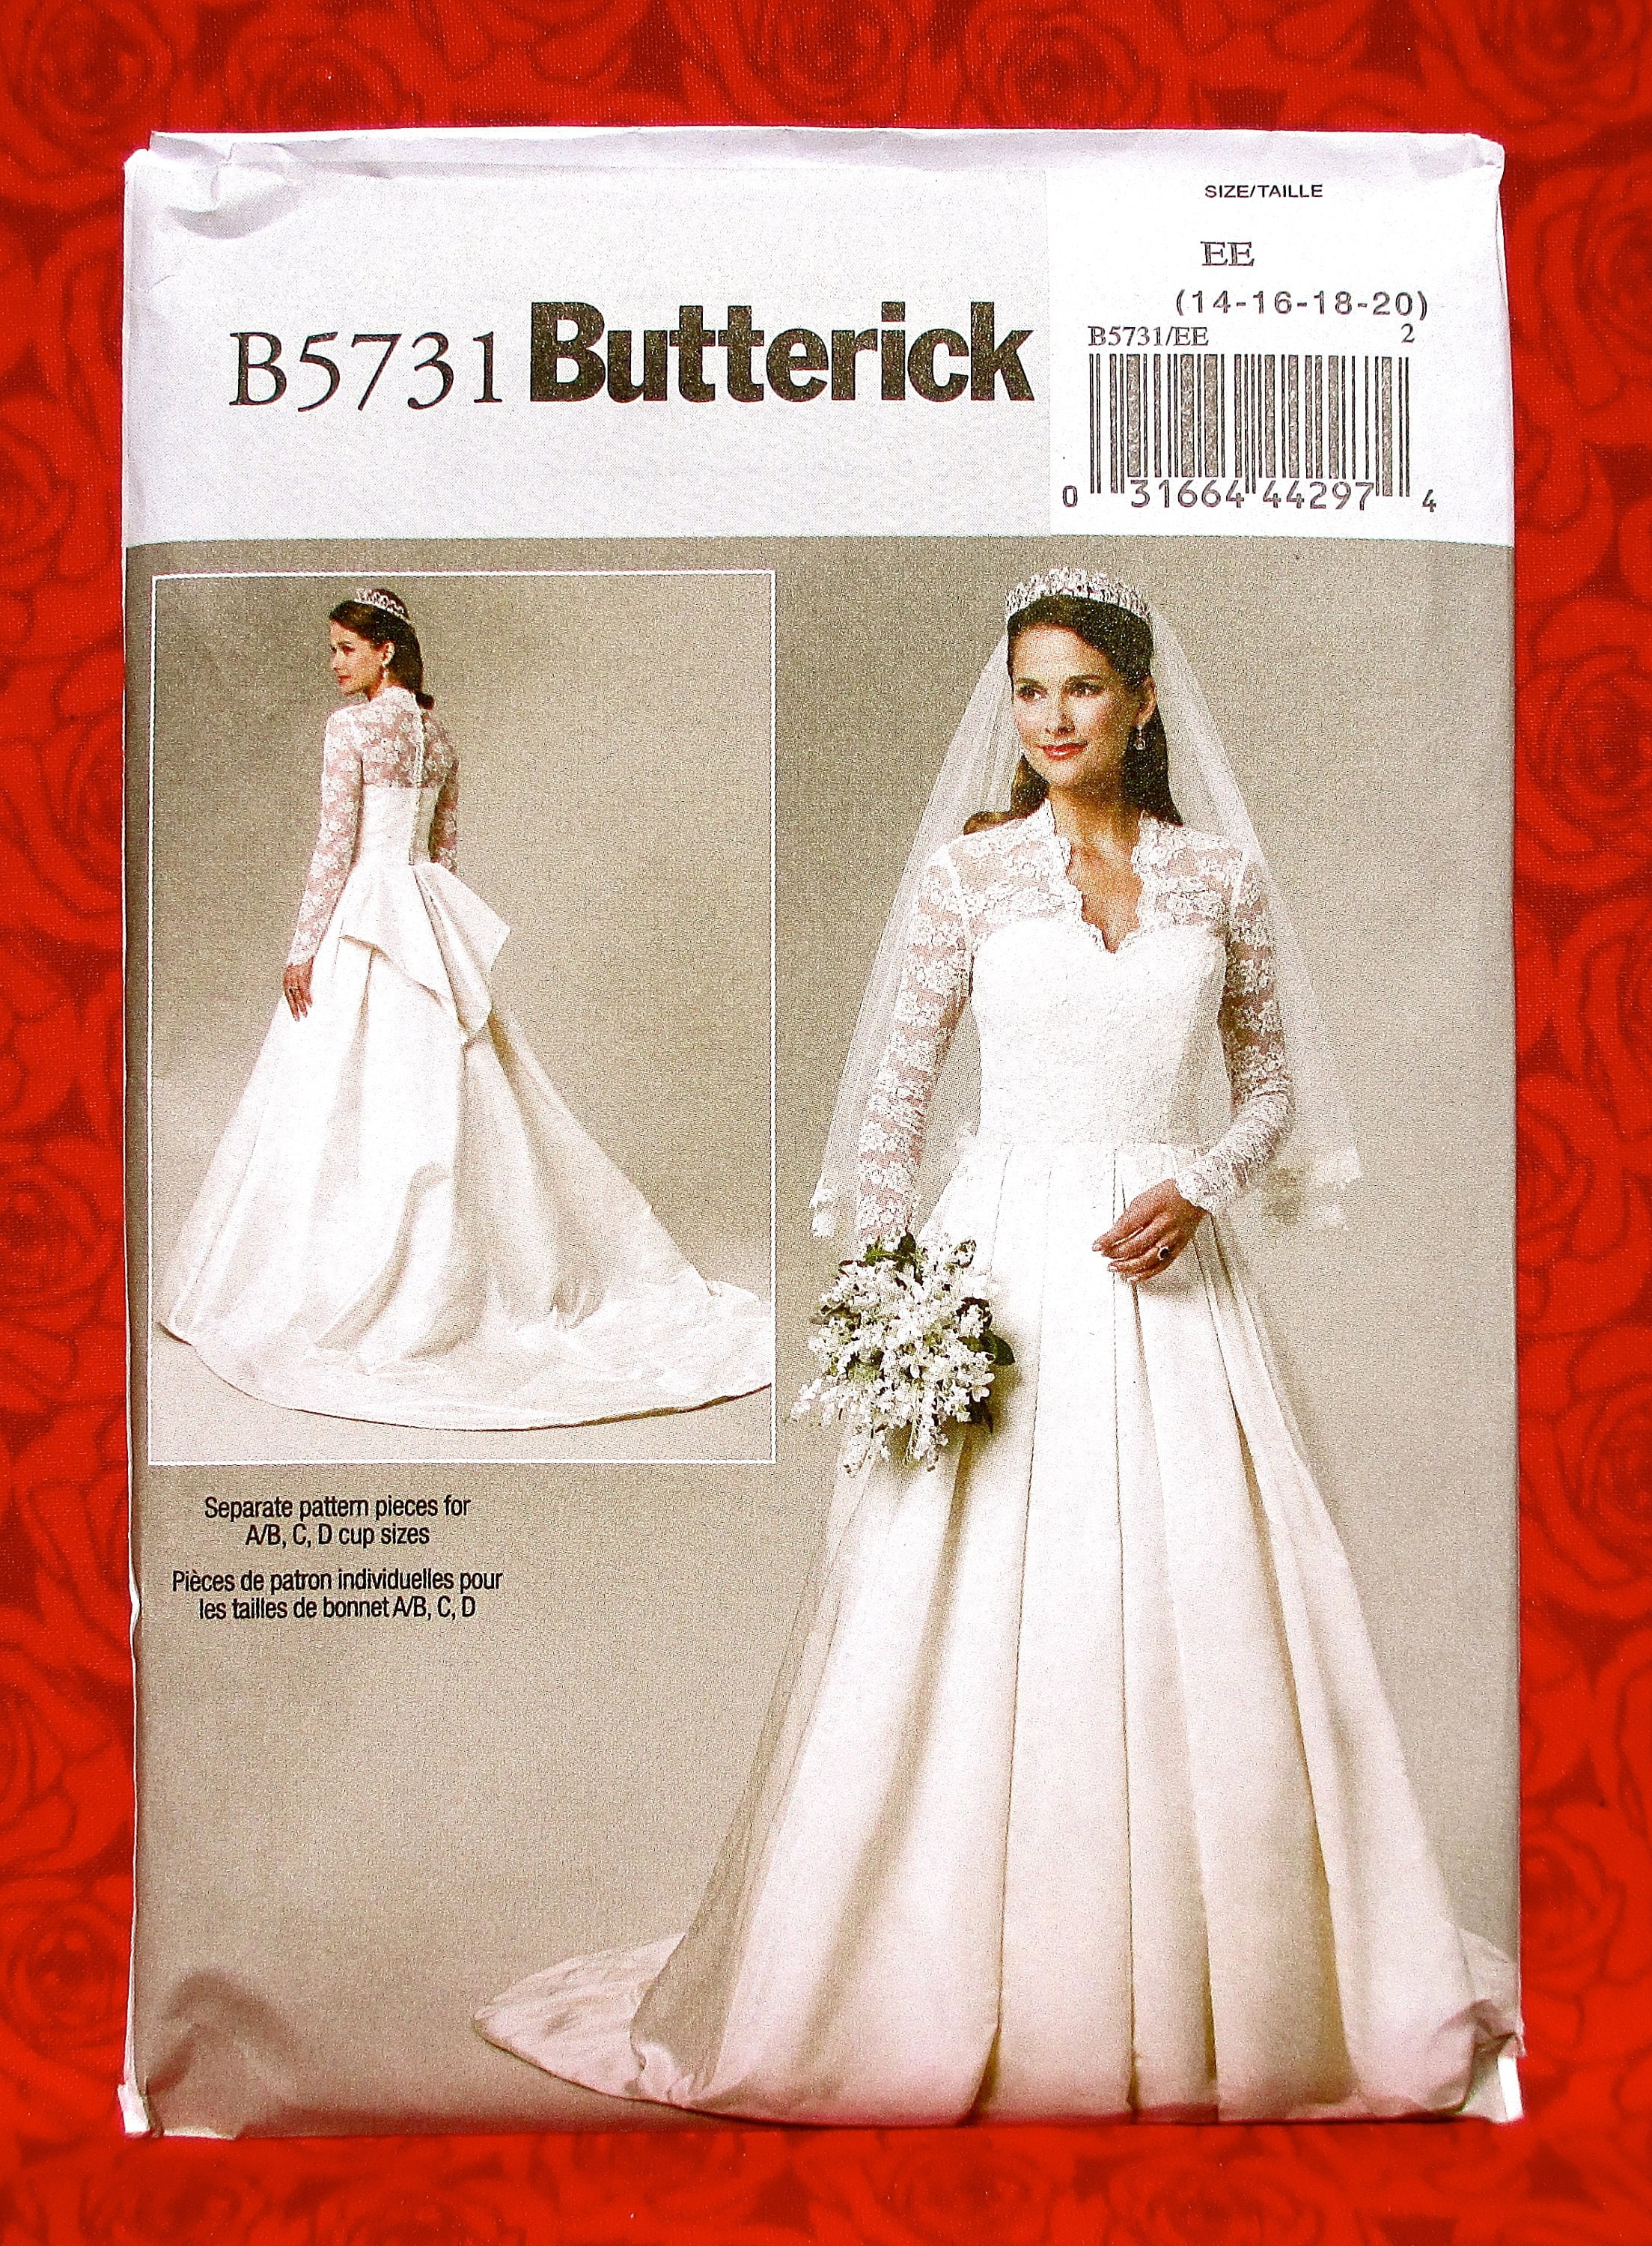 Butterick Sewing Pattern B5731 Bridal Gown Royal Wedding | Etsy